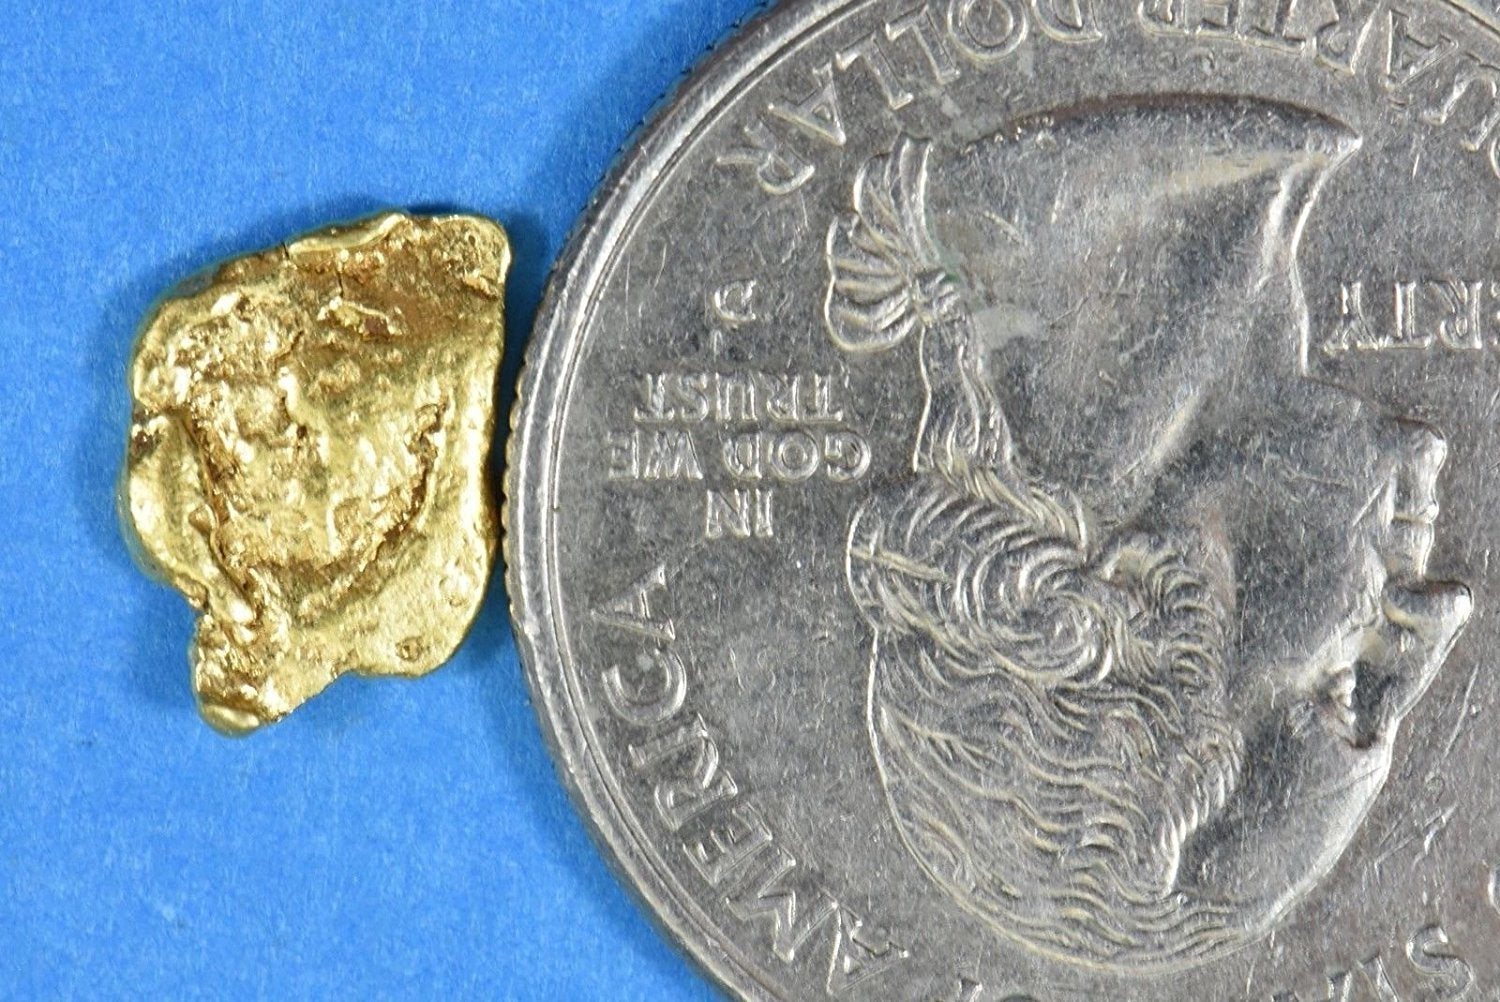 Alaskan Bc Natural Gold Nugget 100 Gram Lot Of 2 To 5 Gram Nuggets Genuine Alaska Lots/groups